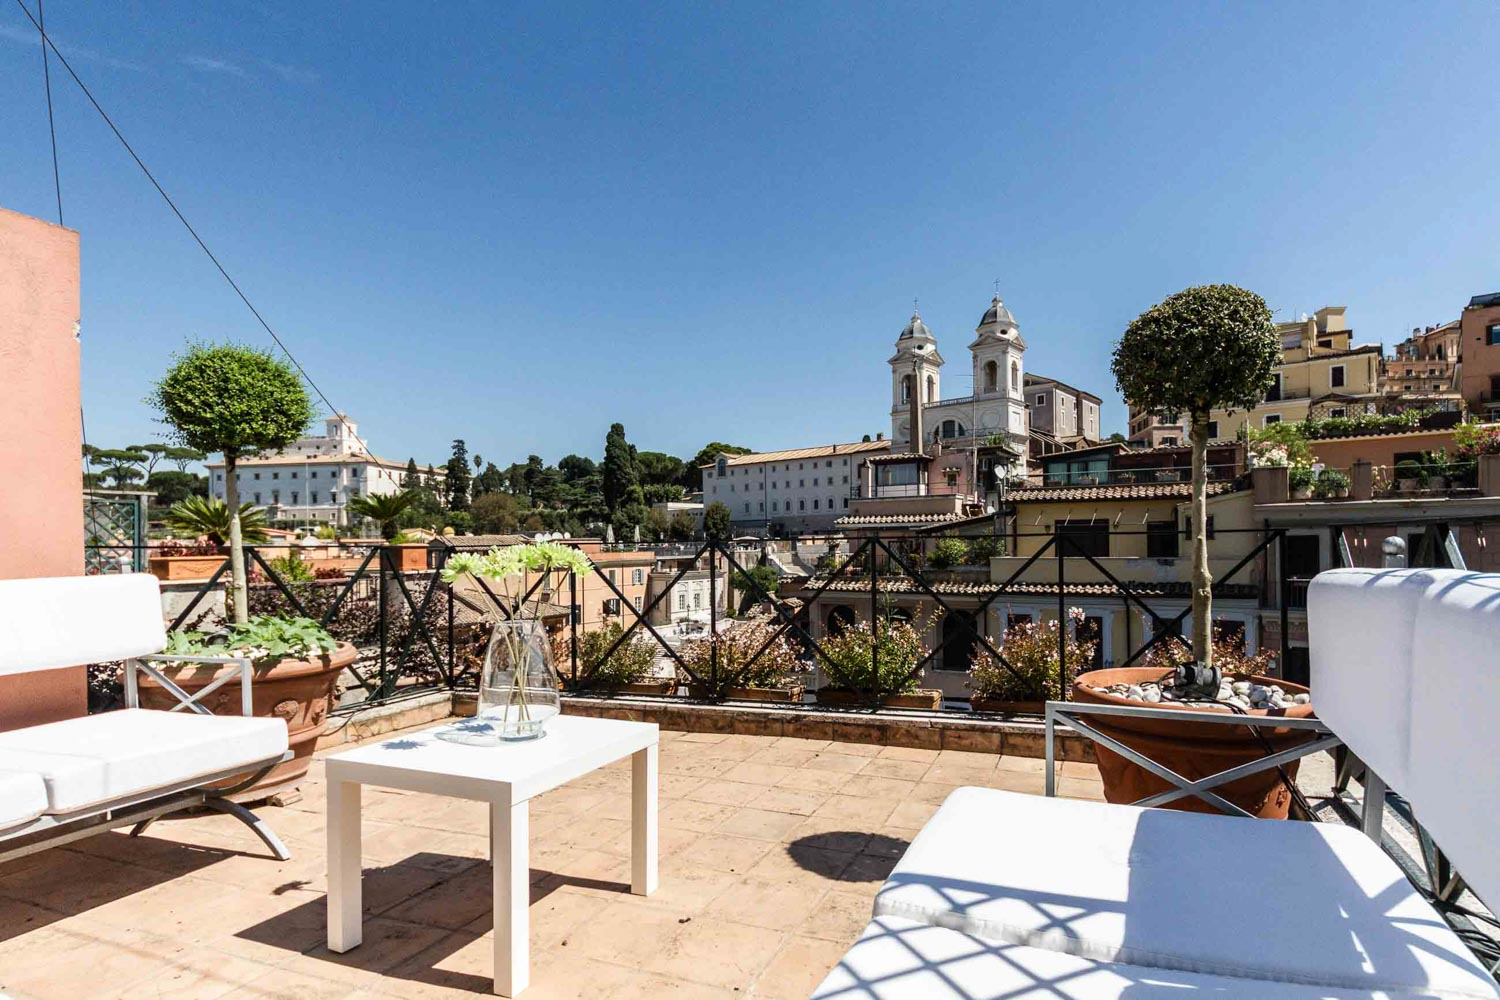 Penthouse for rent Spanish Steps Rome: 300 m2 overlooking the Most Famous Stairway in the World